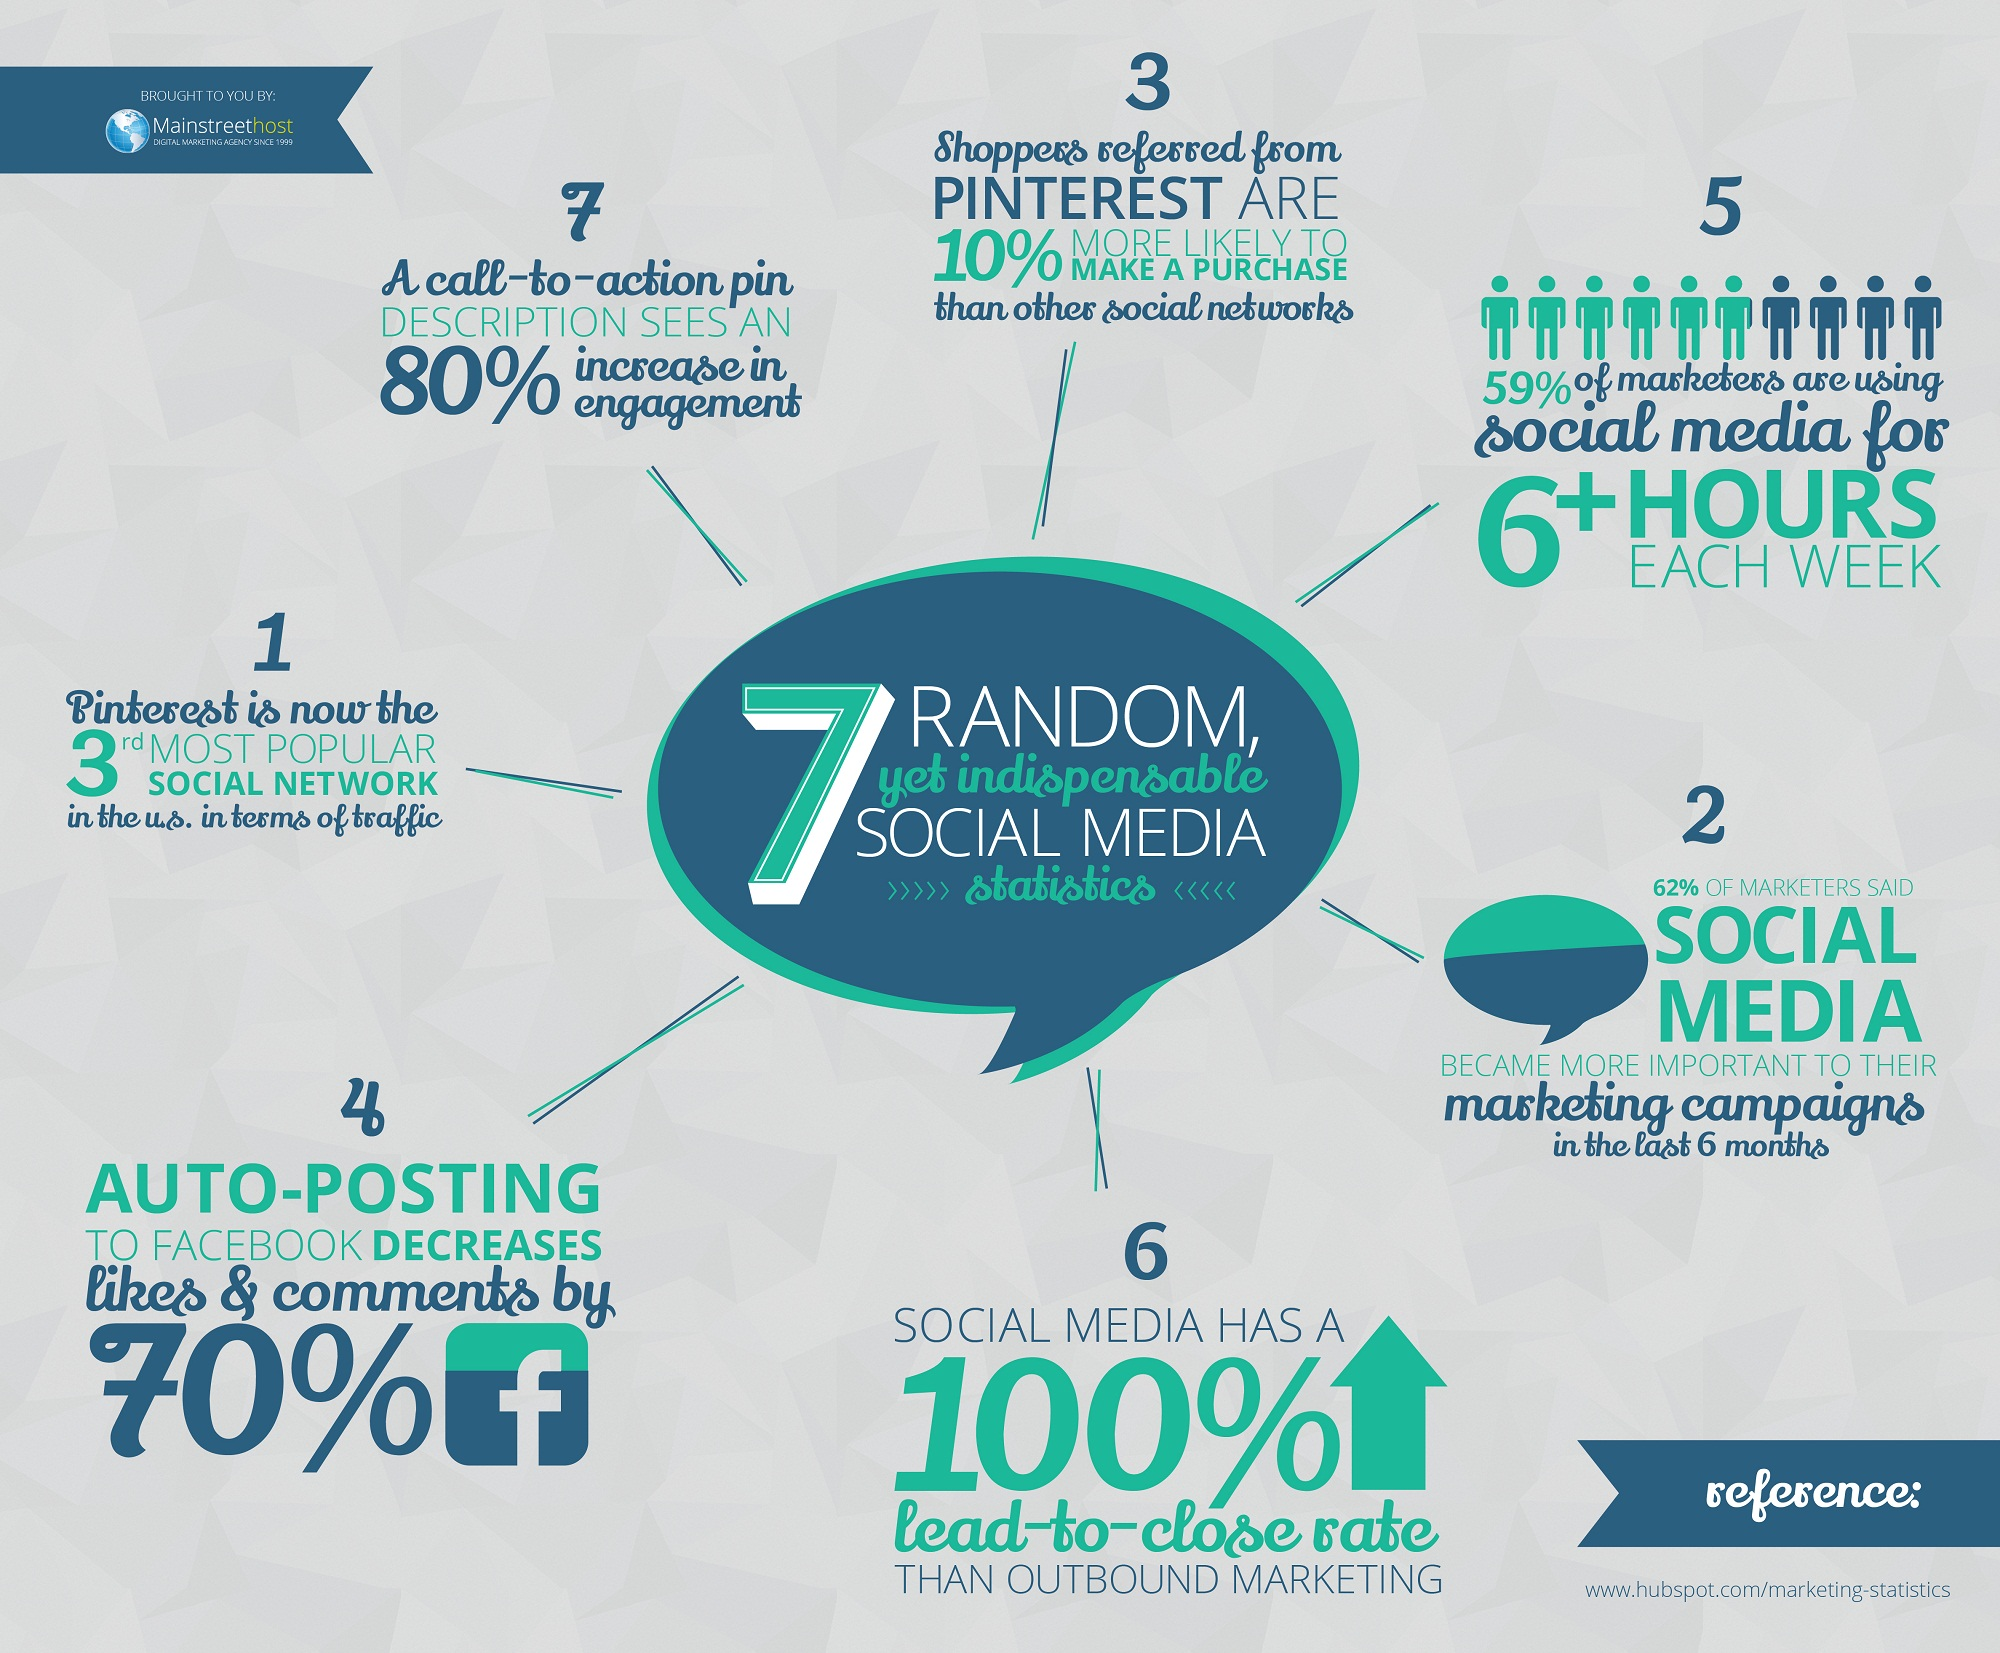 7 Most Amazing #SocialMedia Marketing Facts - #infographic #pinterest #facebook